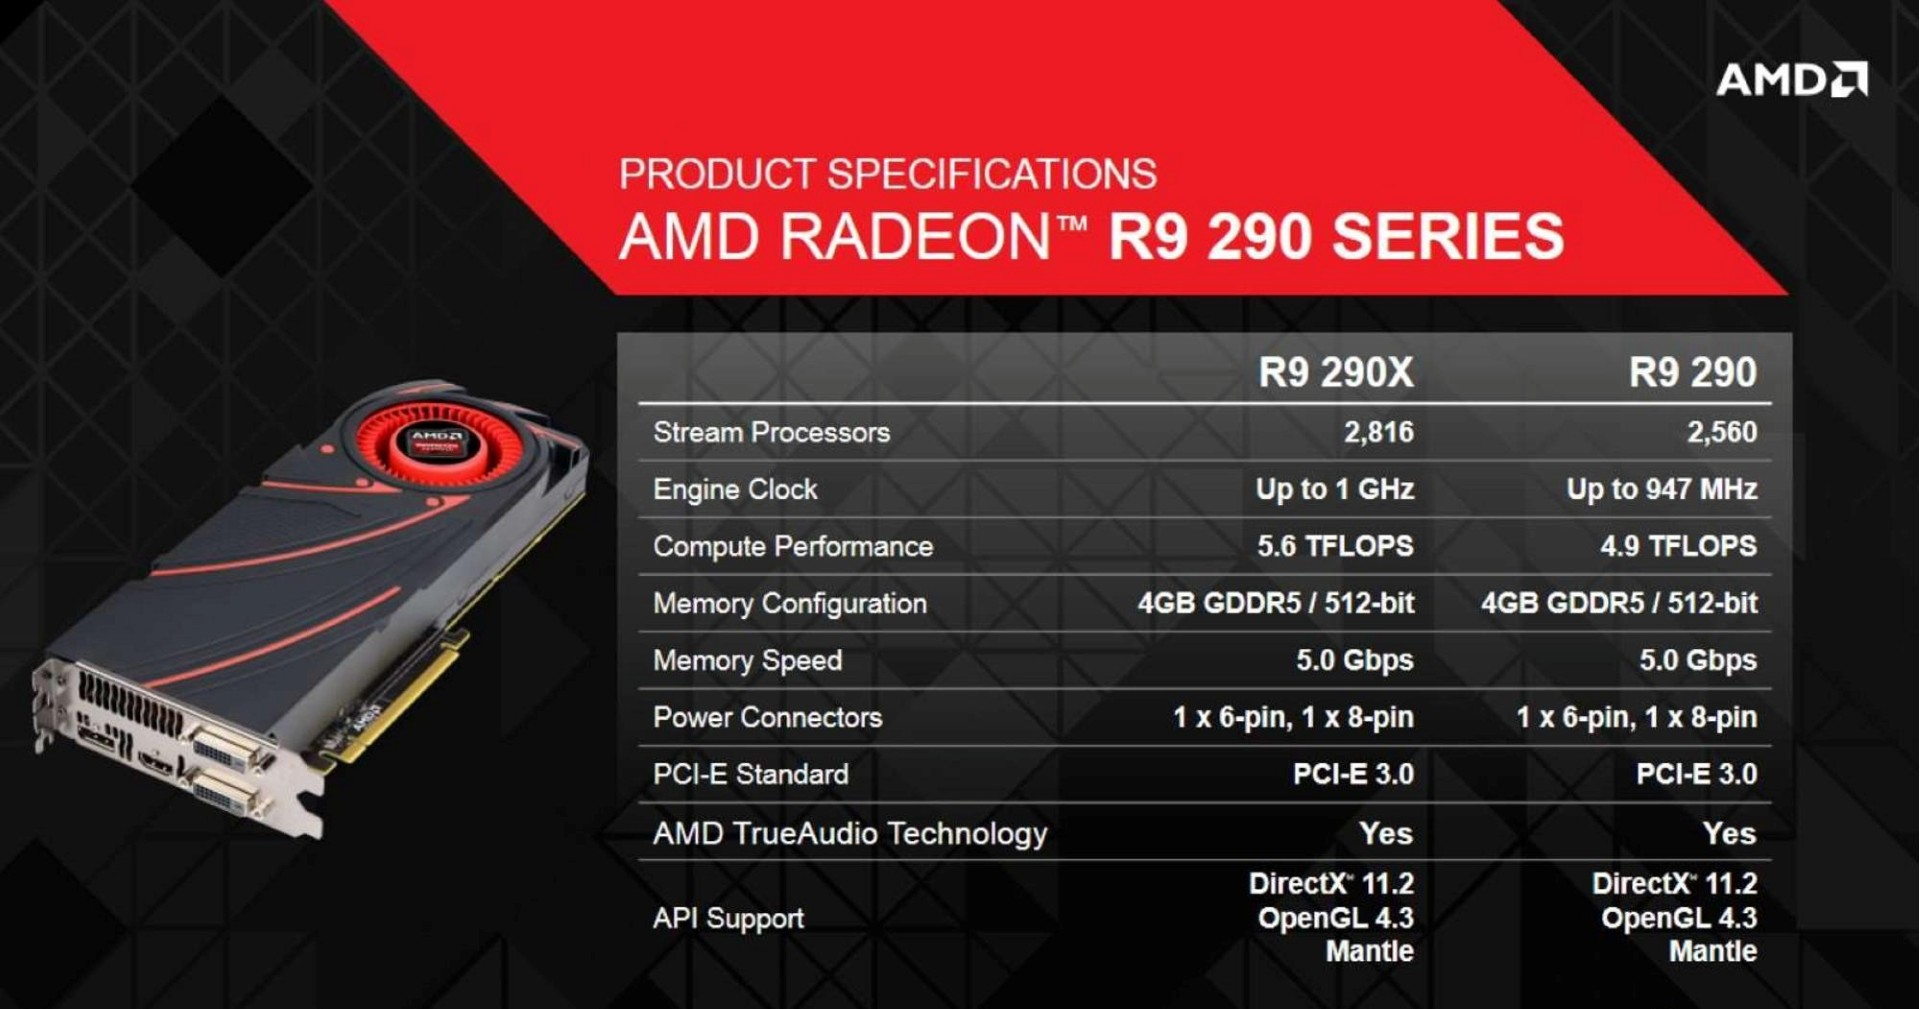 AMD-Radeon-R9-290X-290-Specifications